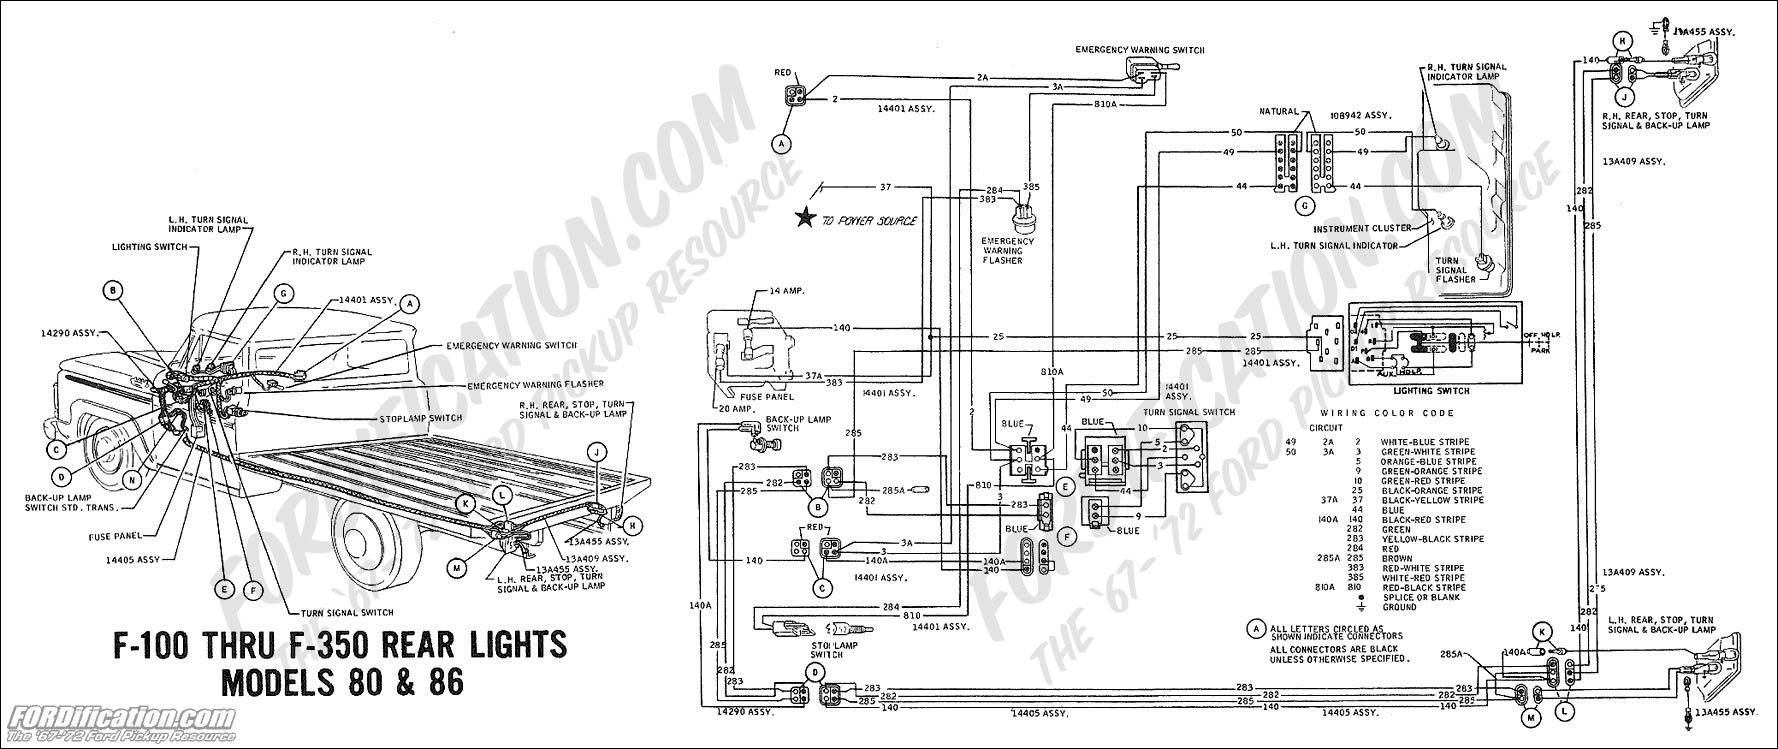 wiring_69rearlights mdls80 86 ford truck technical drawings and schematics section h wiring 2013 Ford F350 Wiring Diagram at sewacar.co